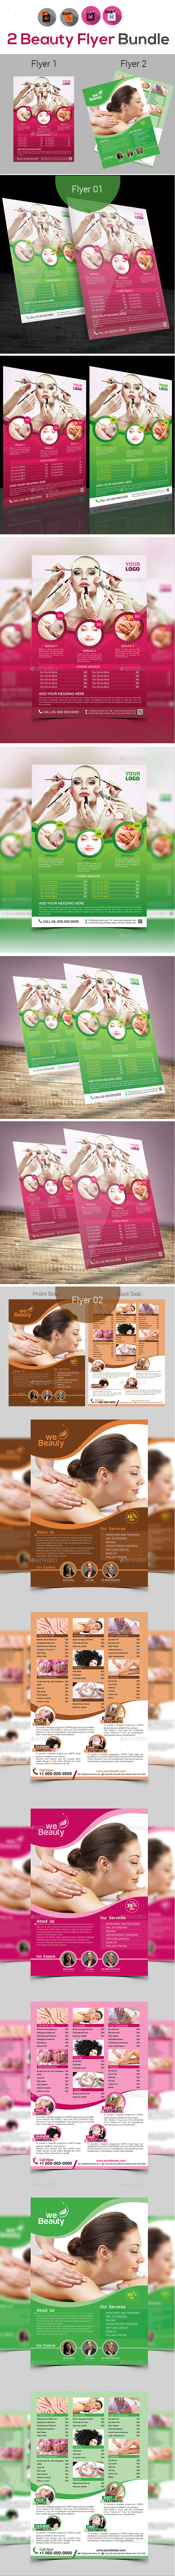 Spa | Beauty | Salon Flyer Bundle V4 - Flyers Print Templates